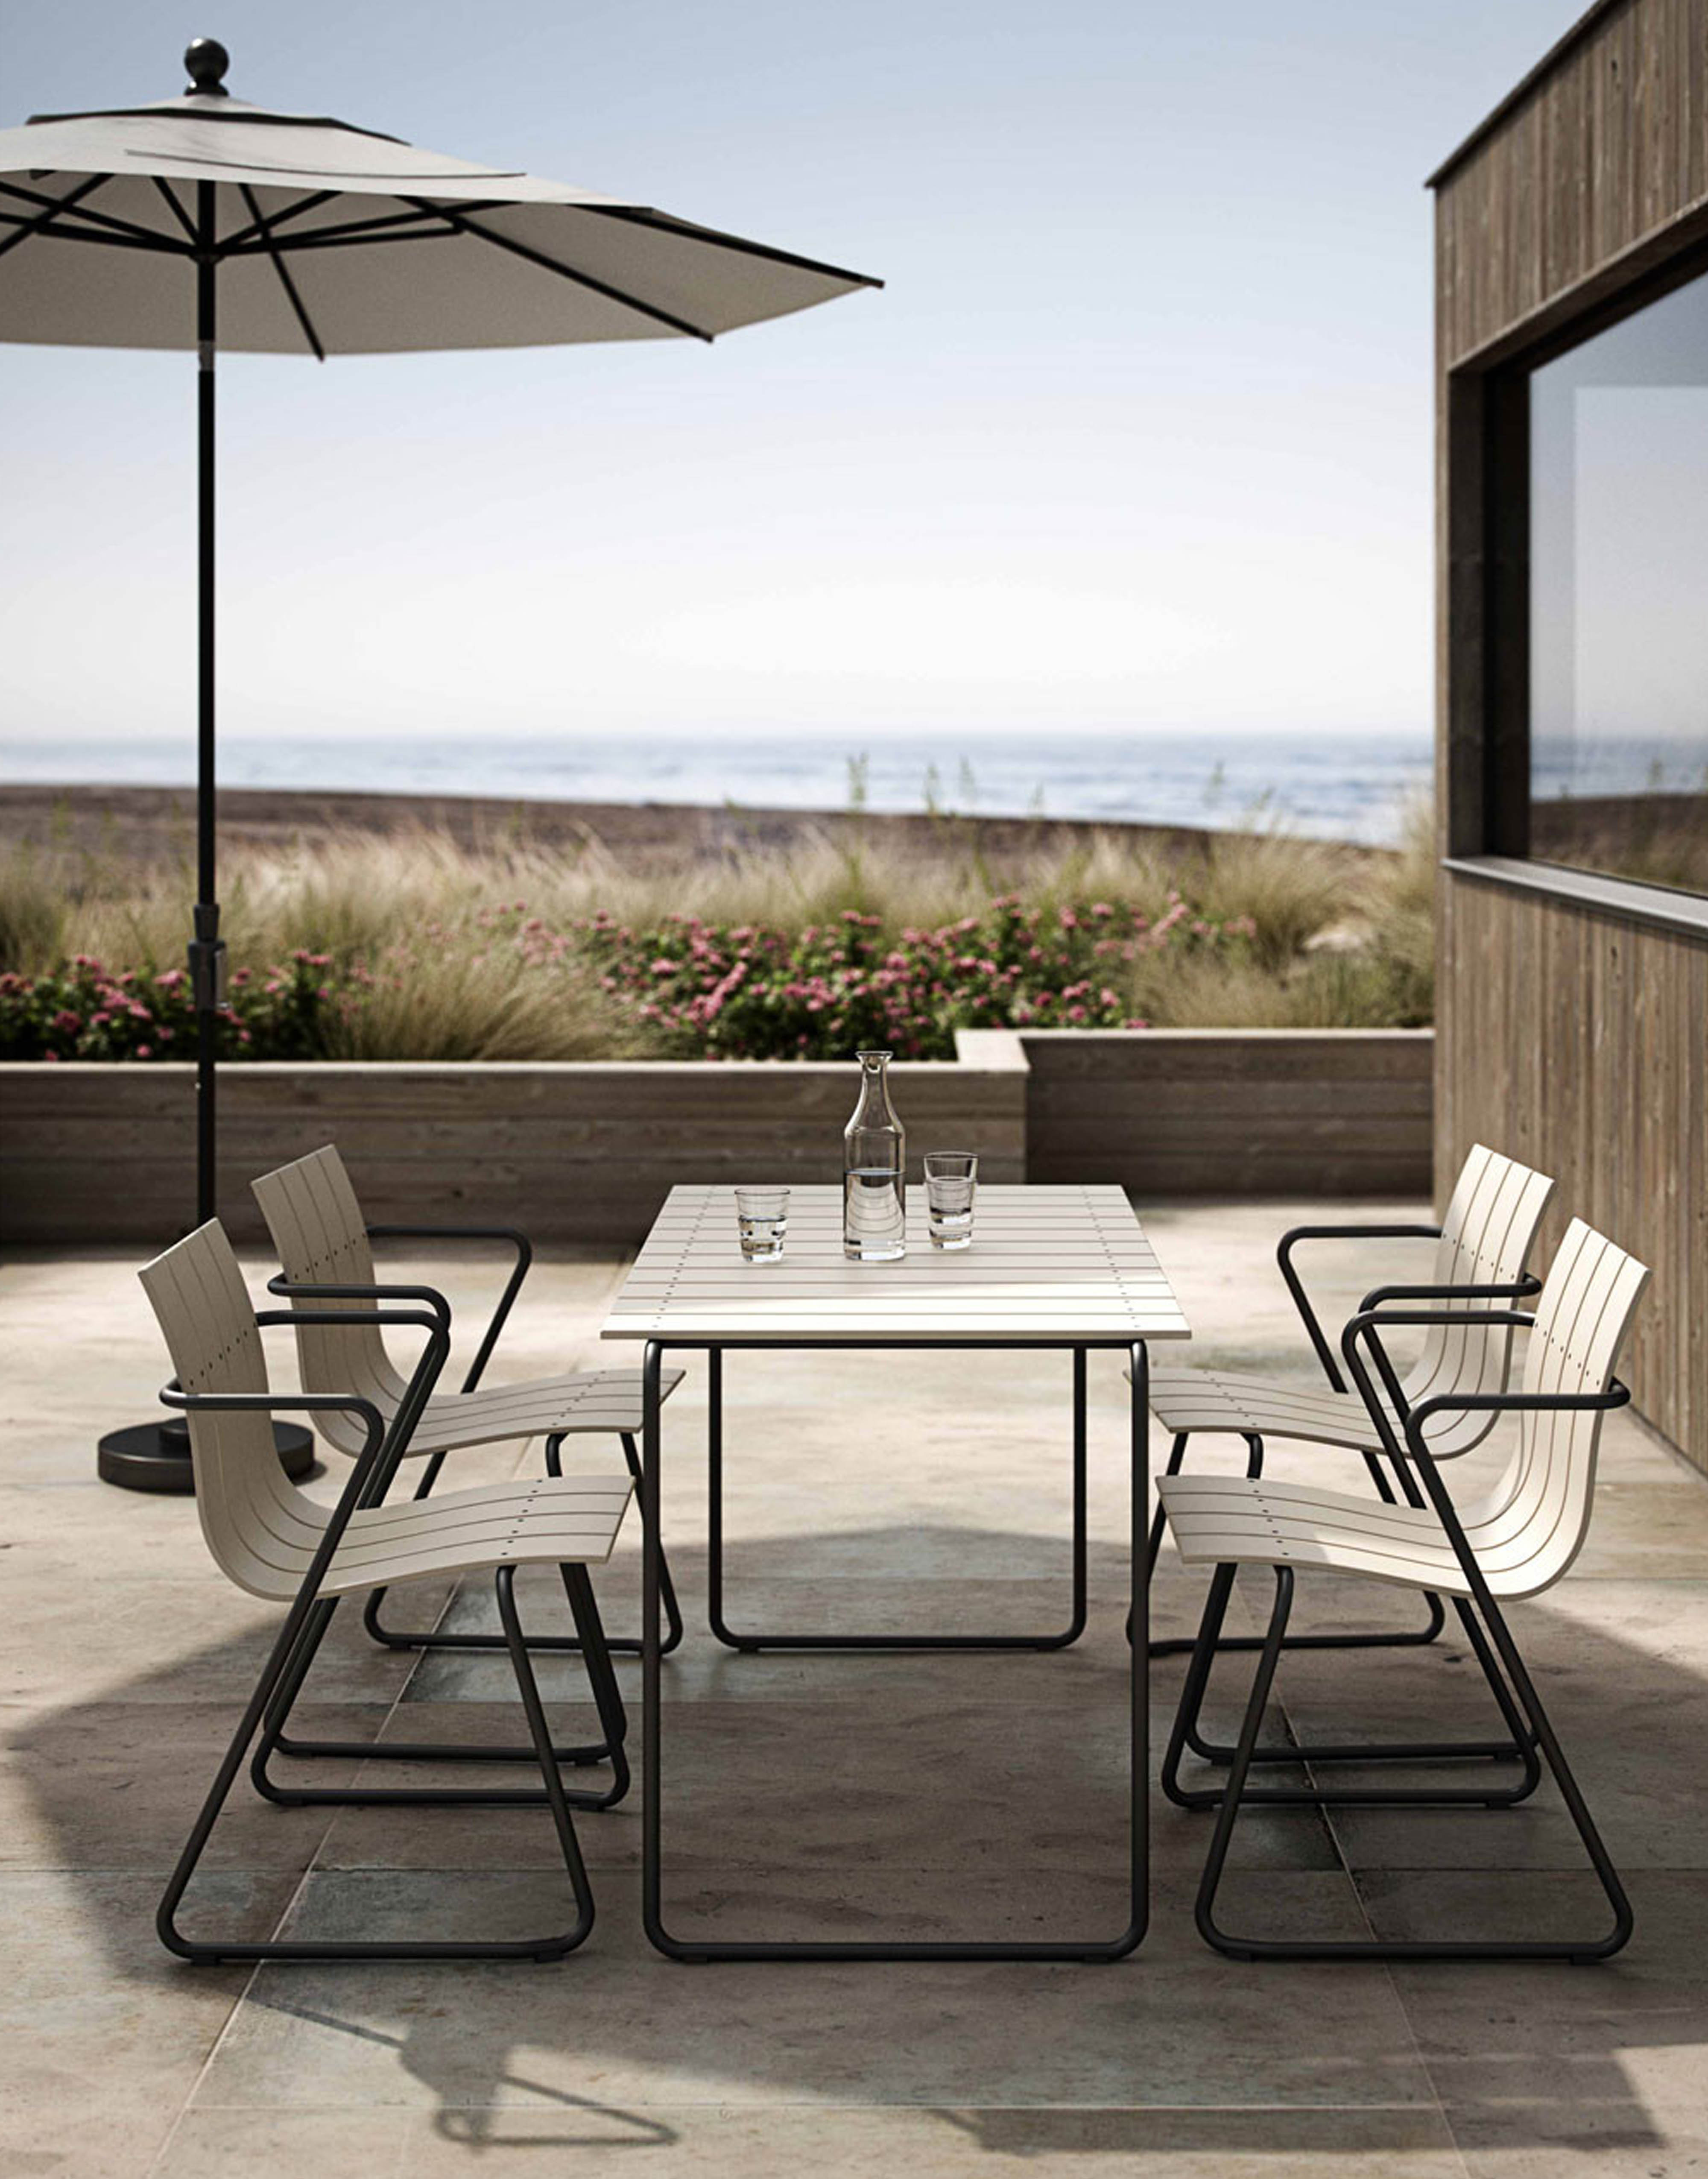 10 of the best outdoor dining sets4